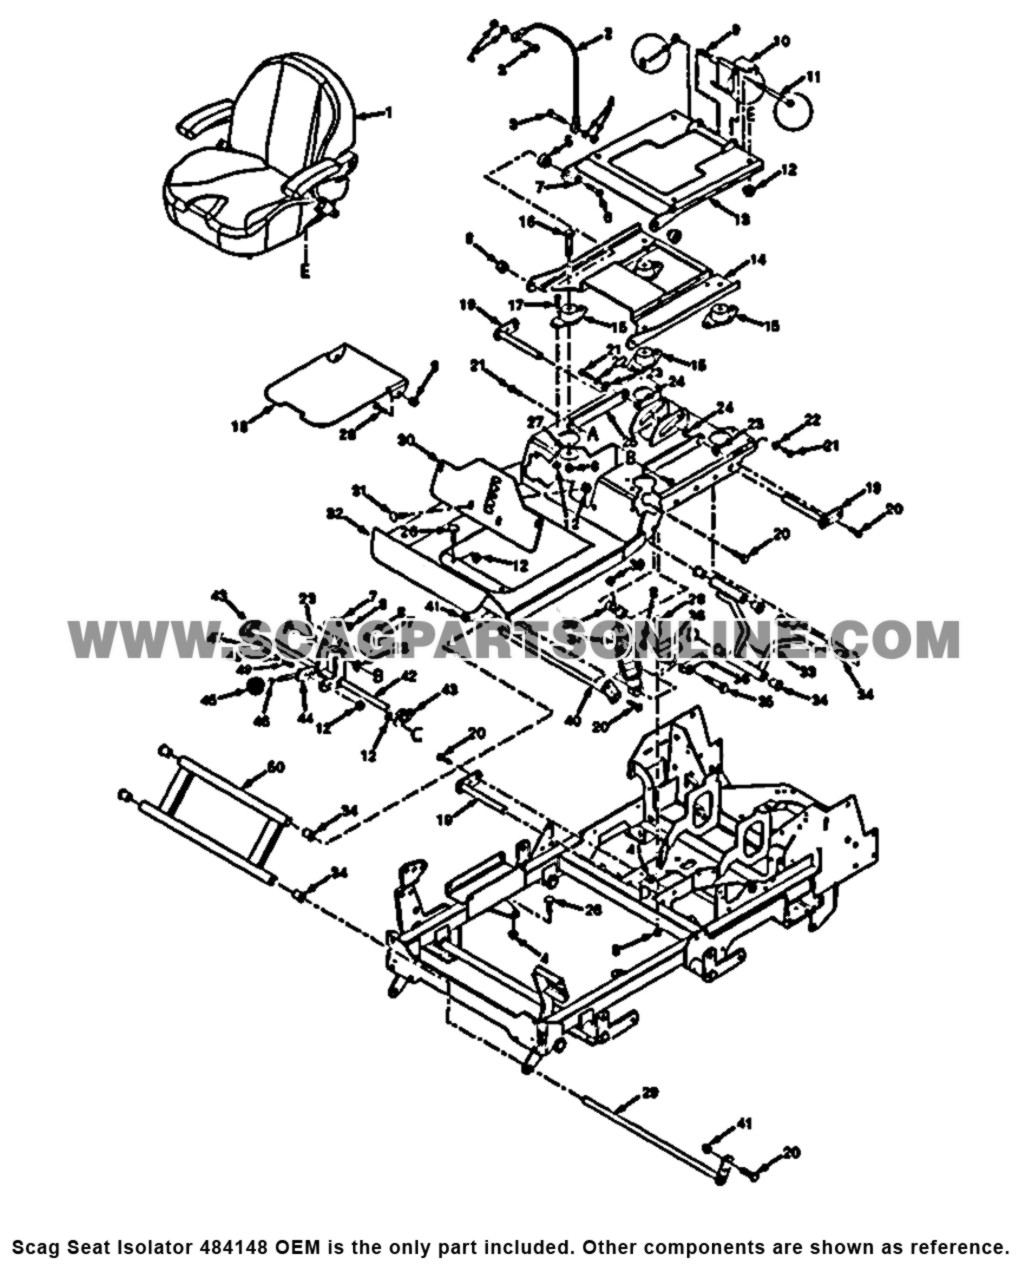 Parts lookup Scag Seat Isolator 484148 OEM diagram